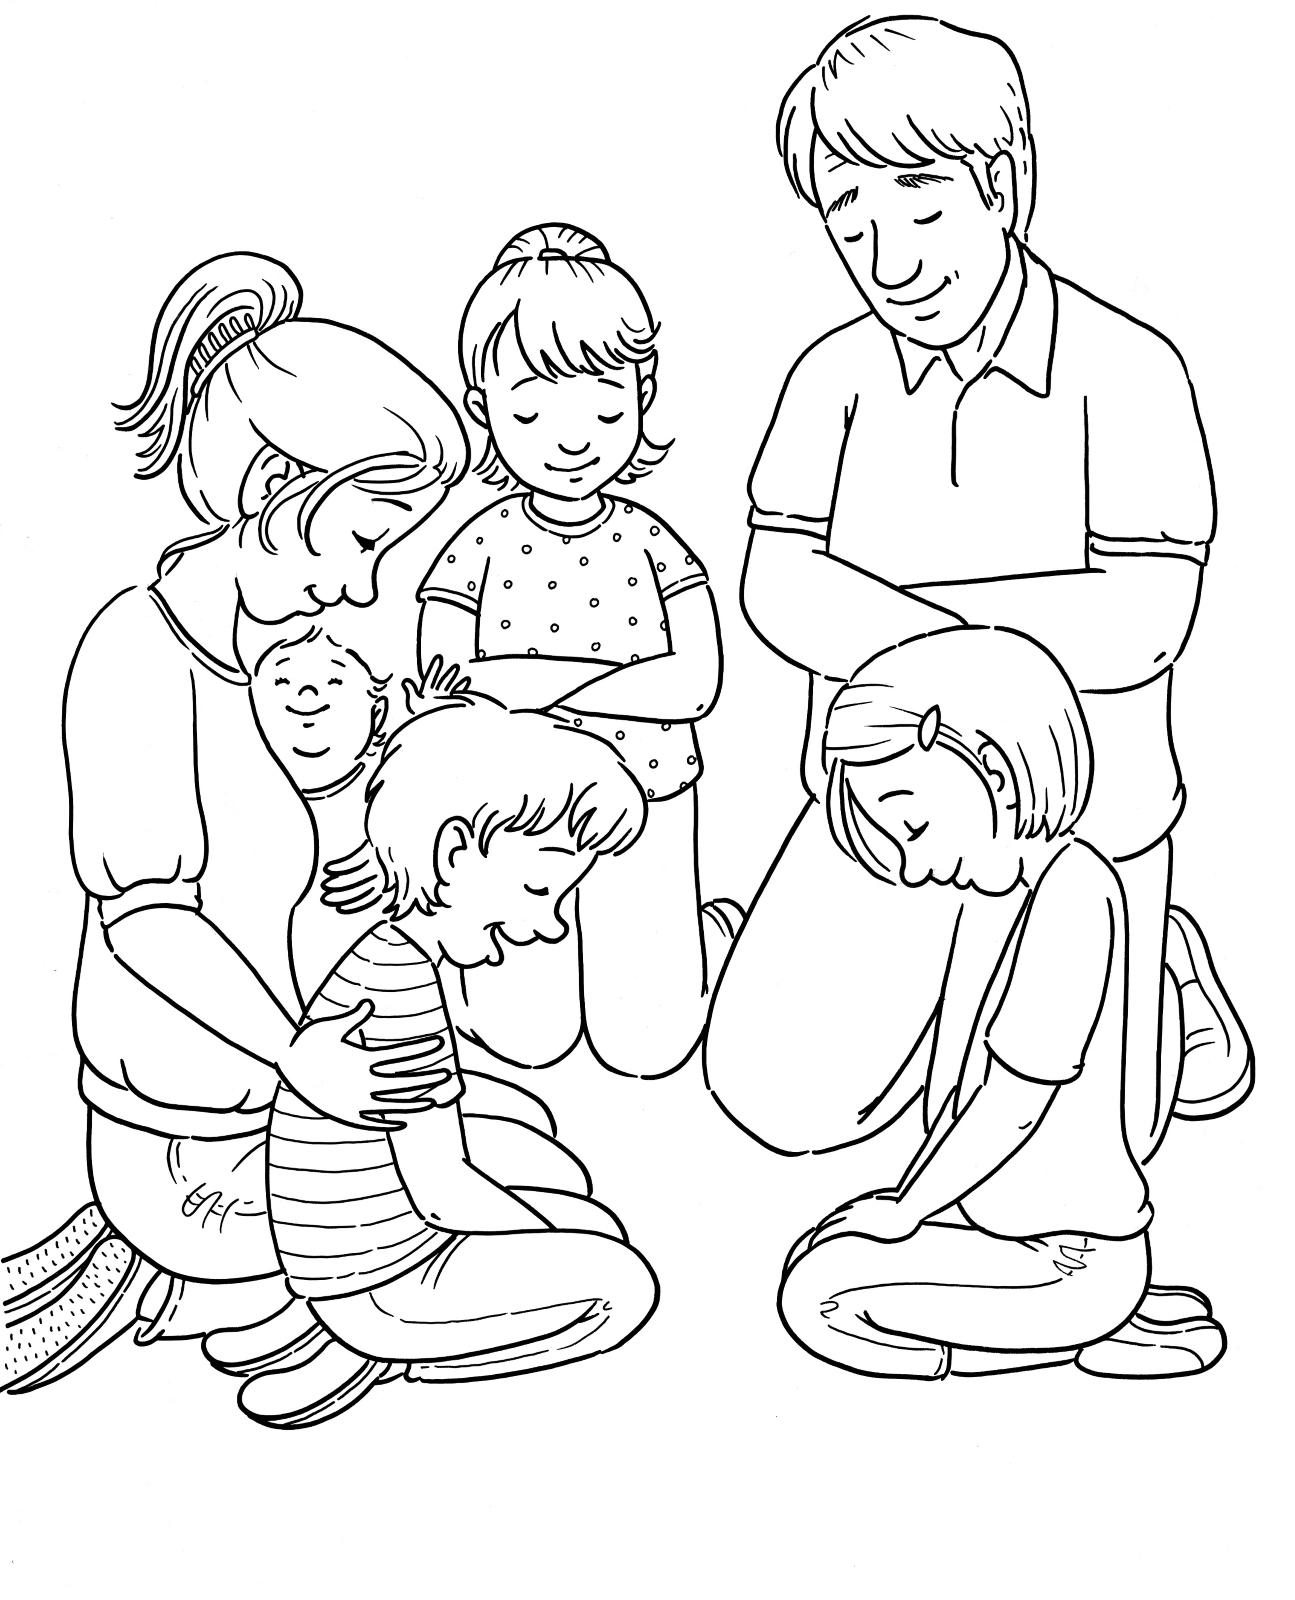 coloring picture of family family prayer picture family coloring of